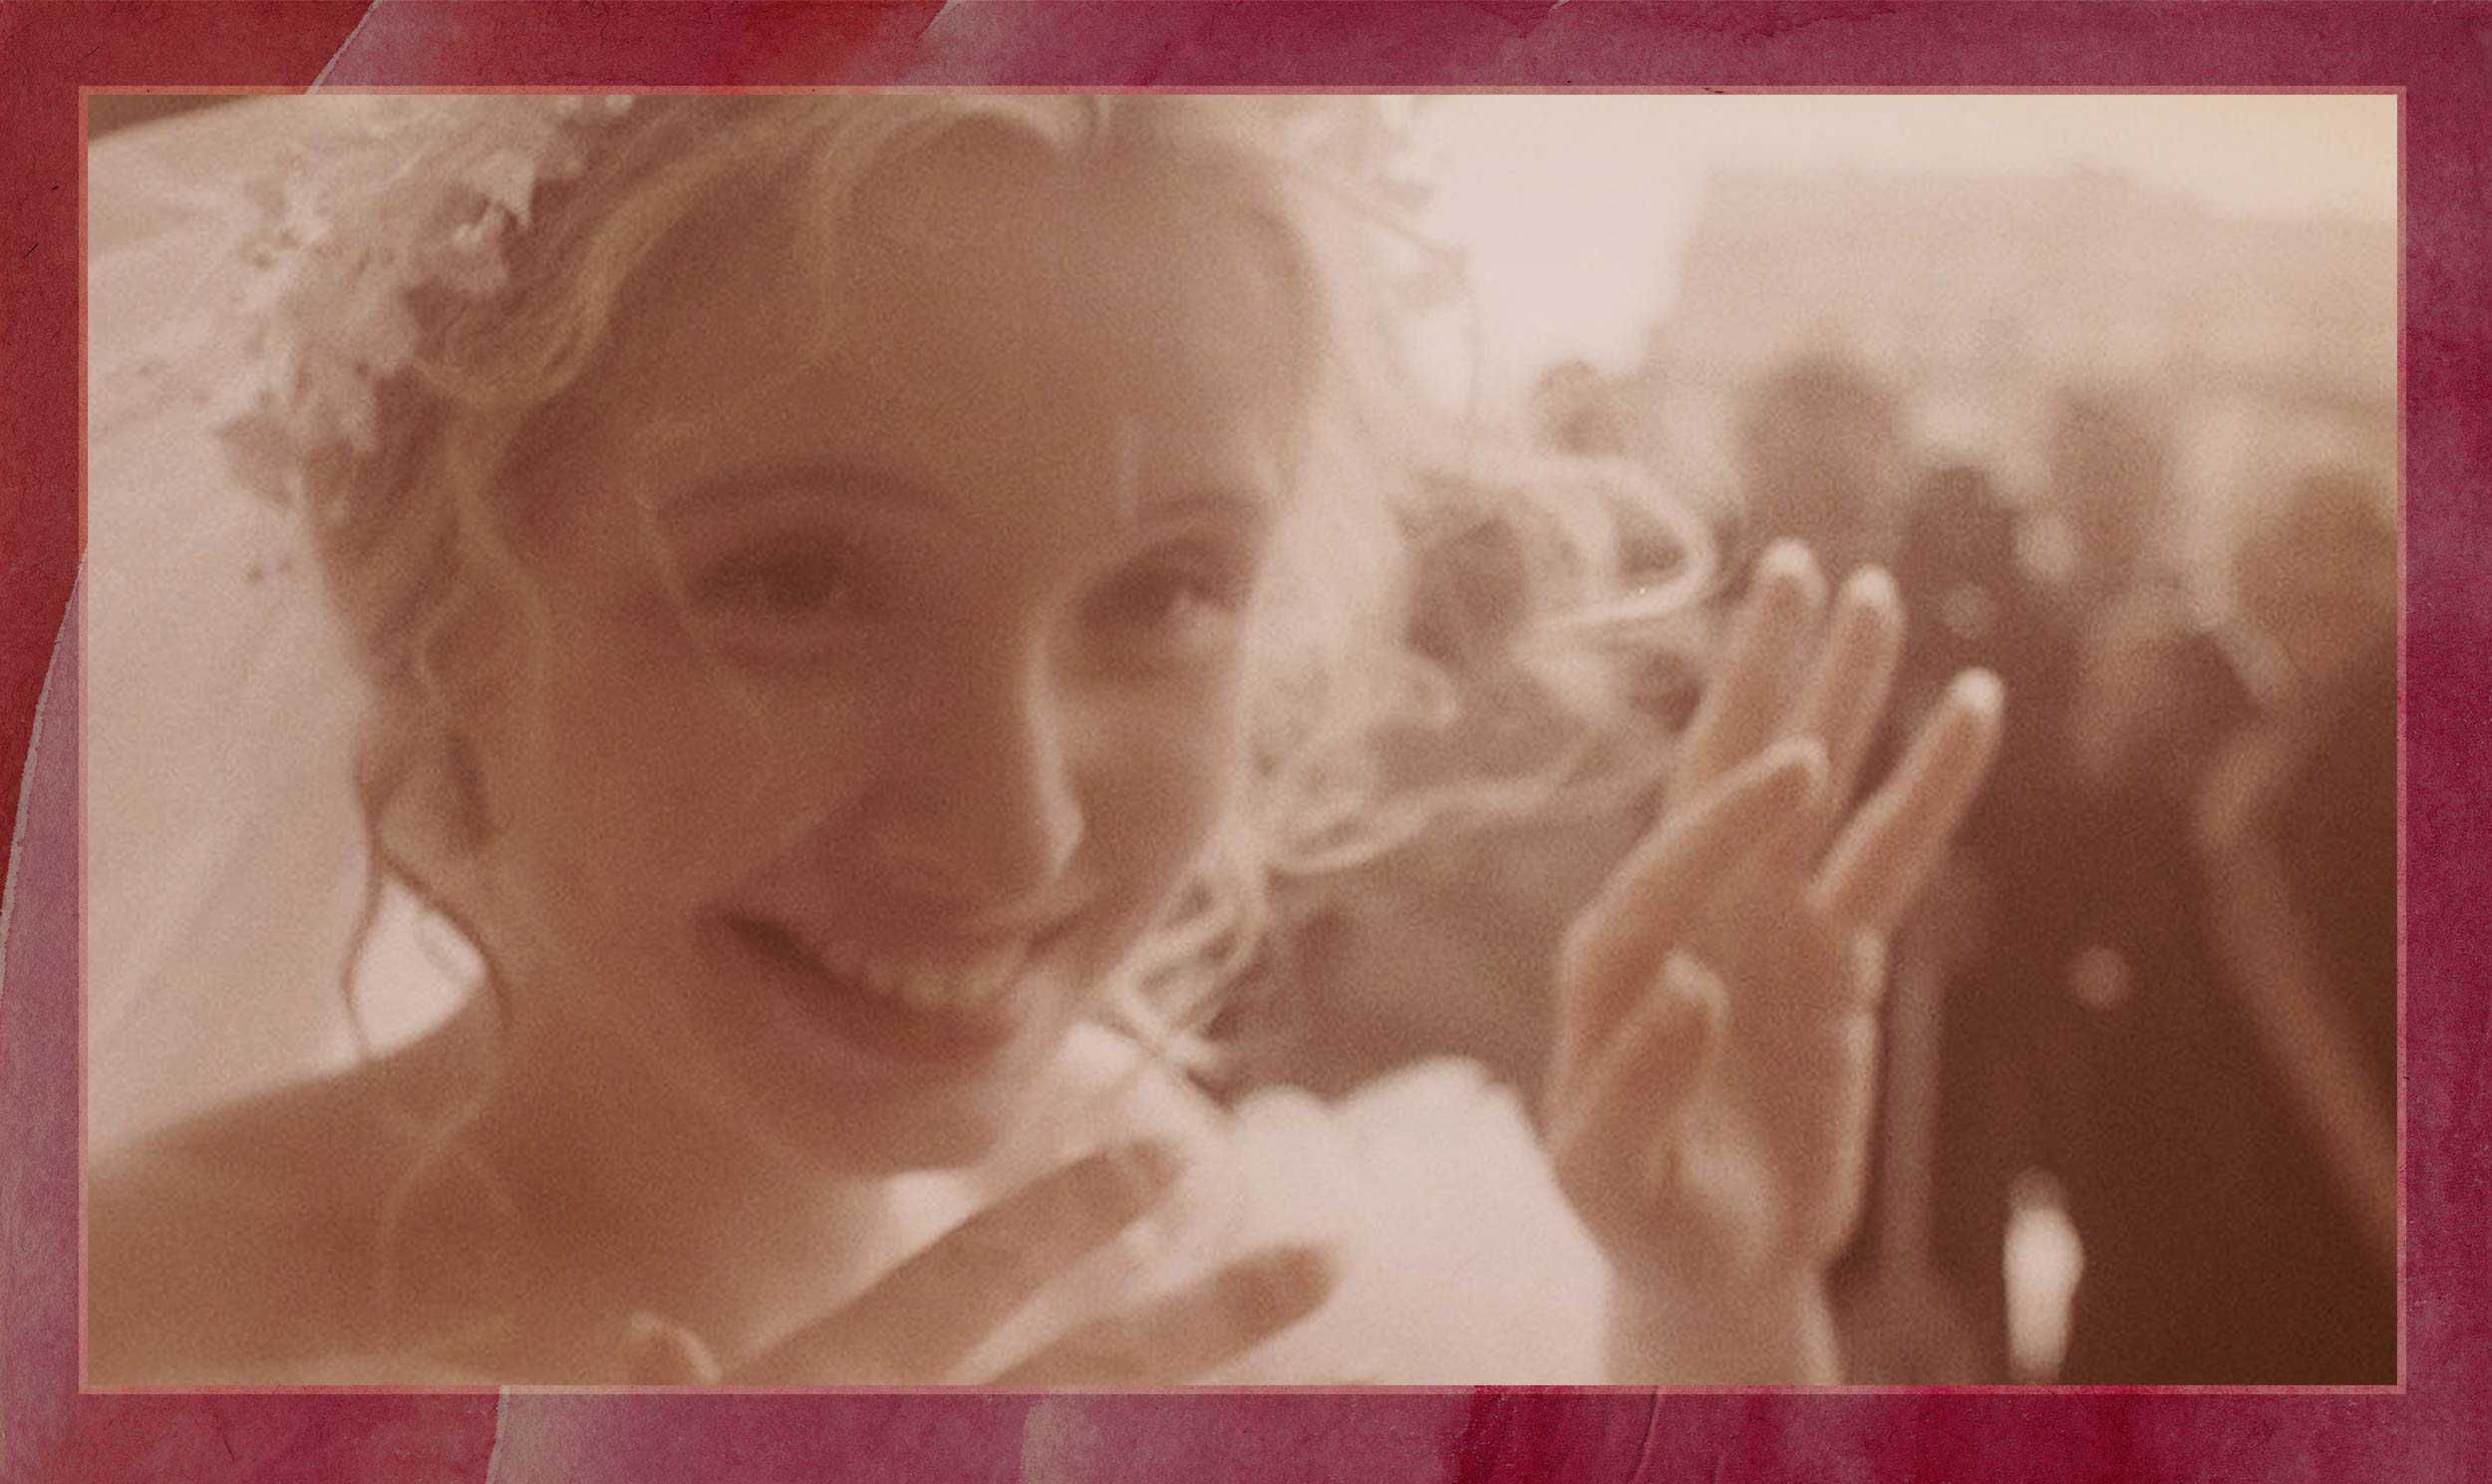 A still Image of Julie Delpy from Krzysztof Kieślowski 3 Colors trilogy.